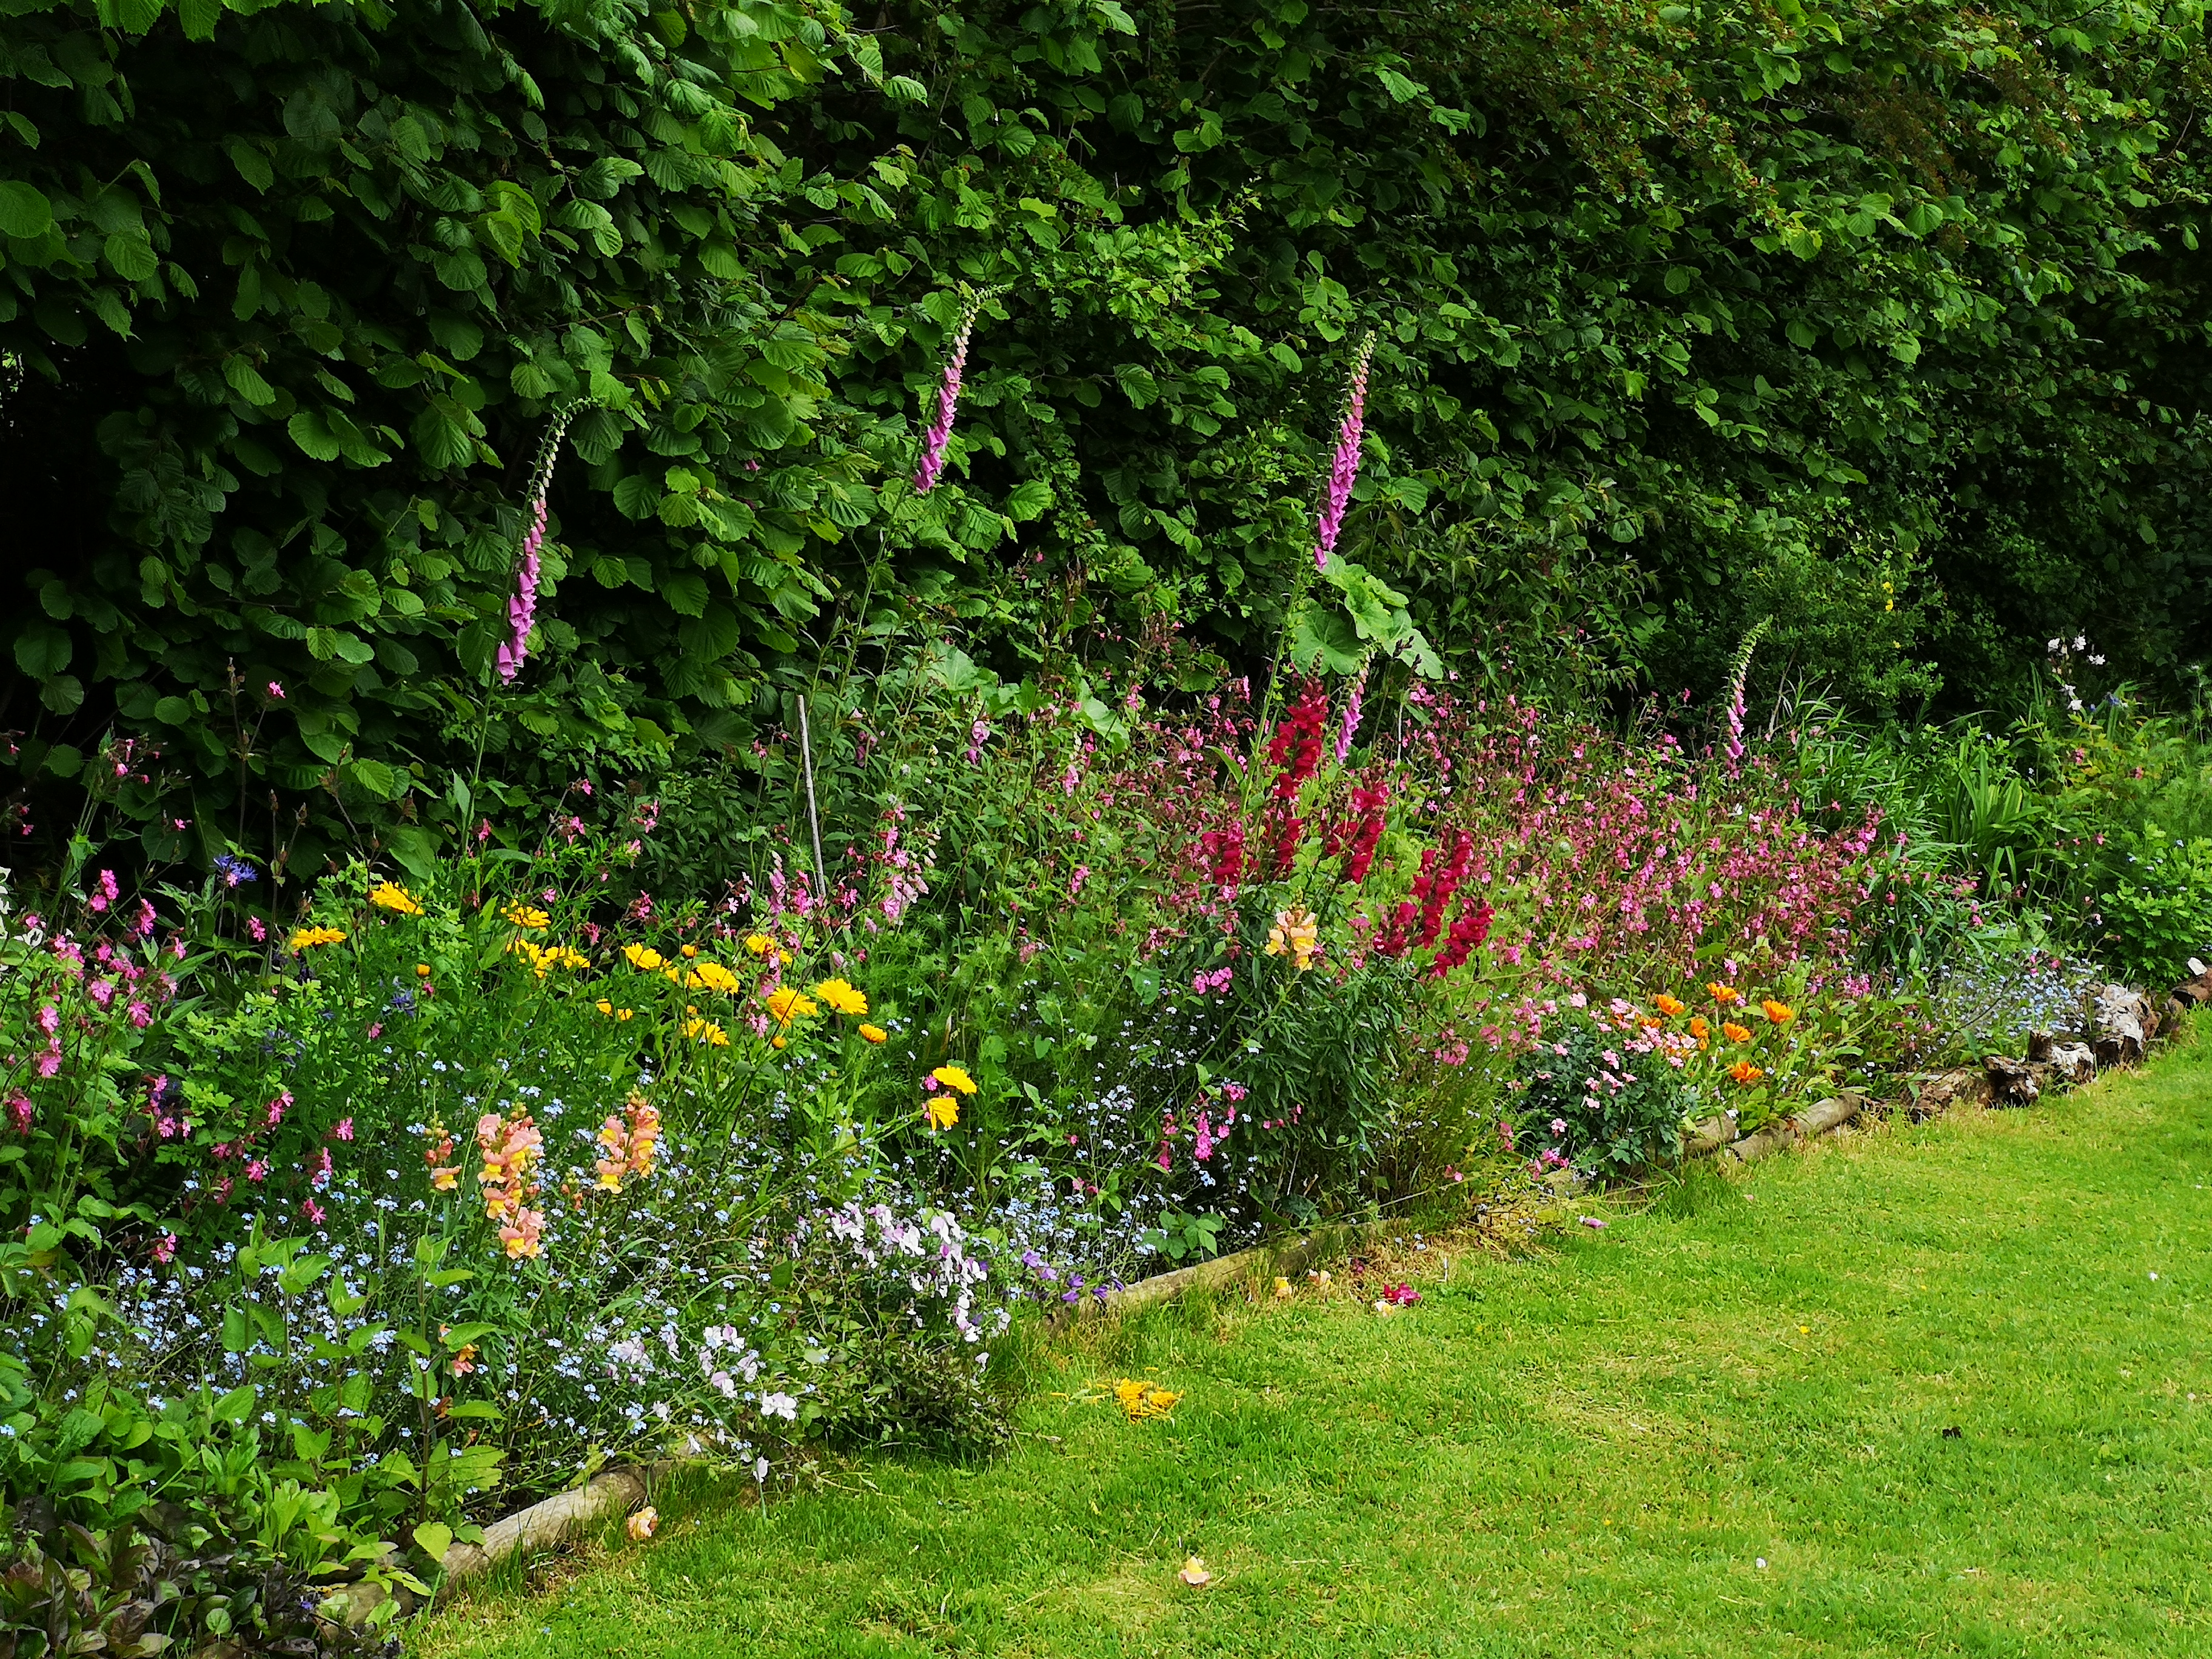 The Orchard border